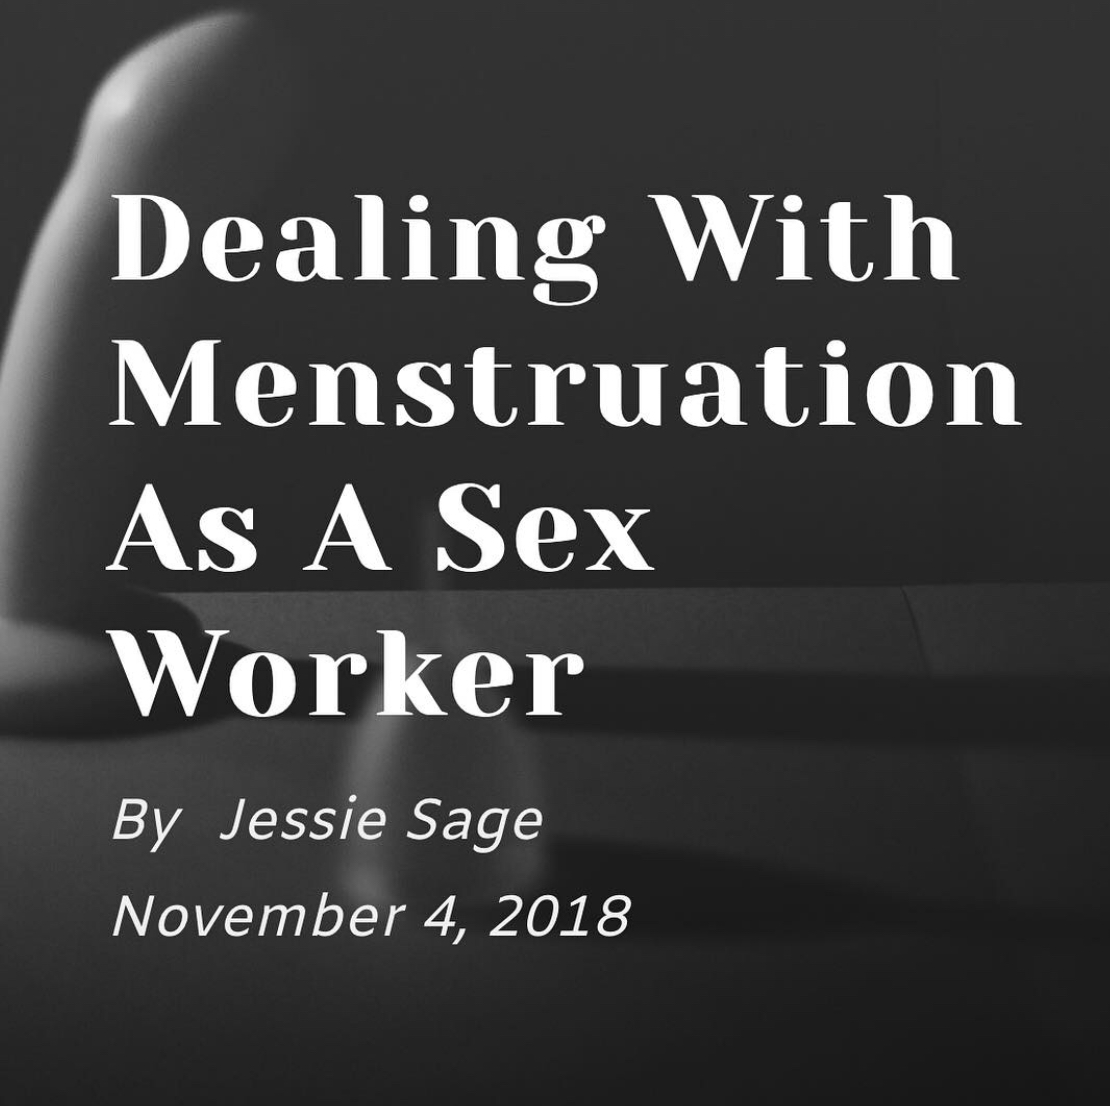 Dealing with Menstruation as a Sex Worker, On Our Moon